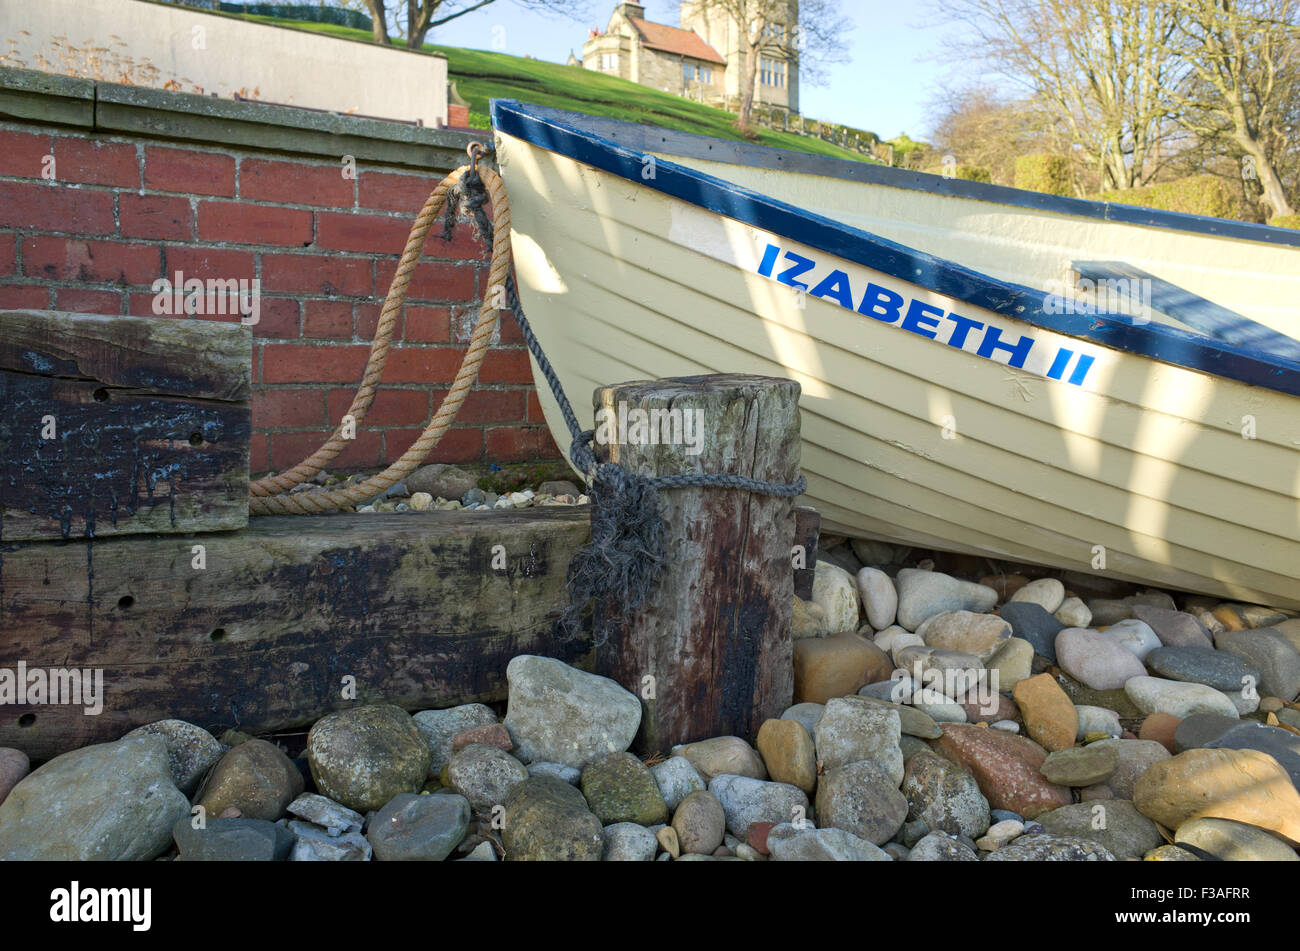 Old rowing boat park display, Filey North Yorkshire UK Stock Photo